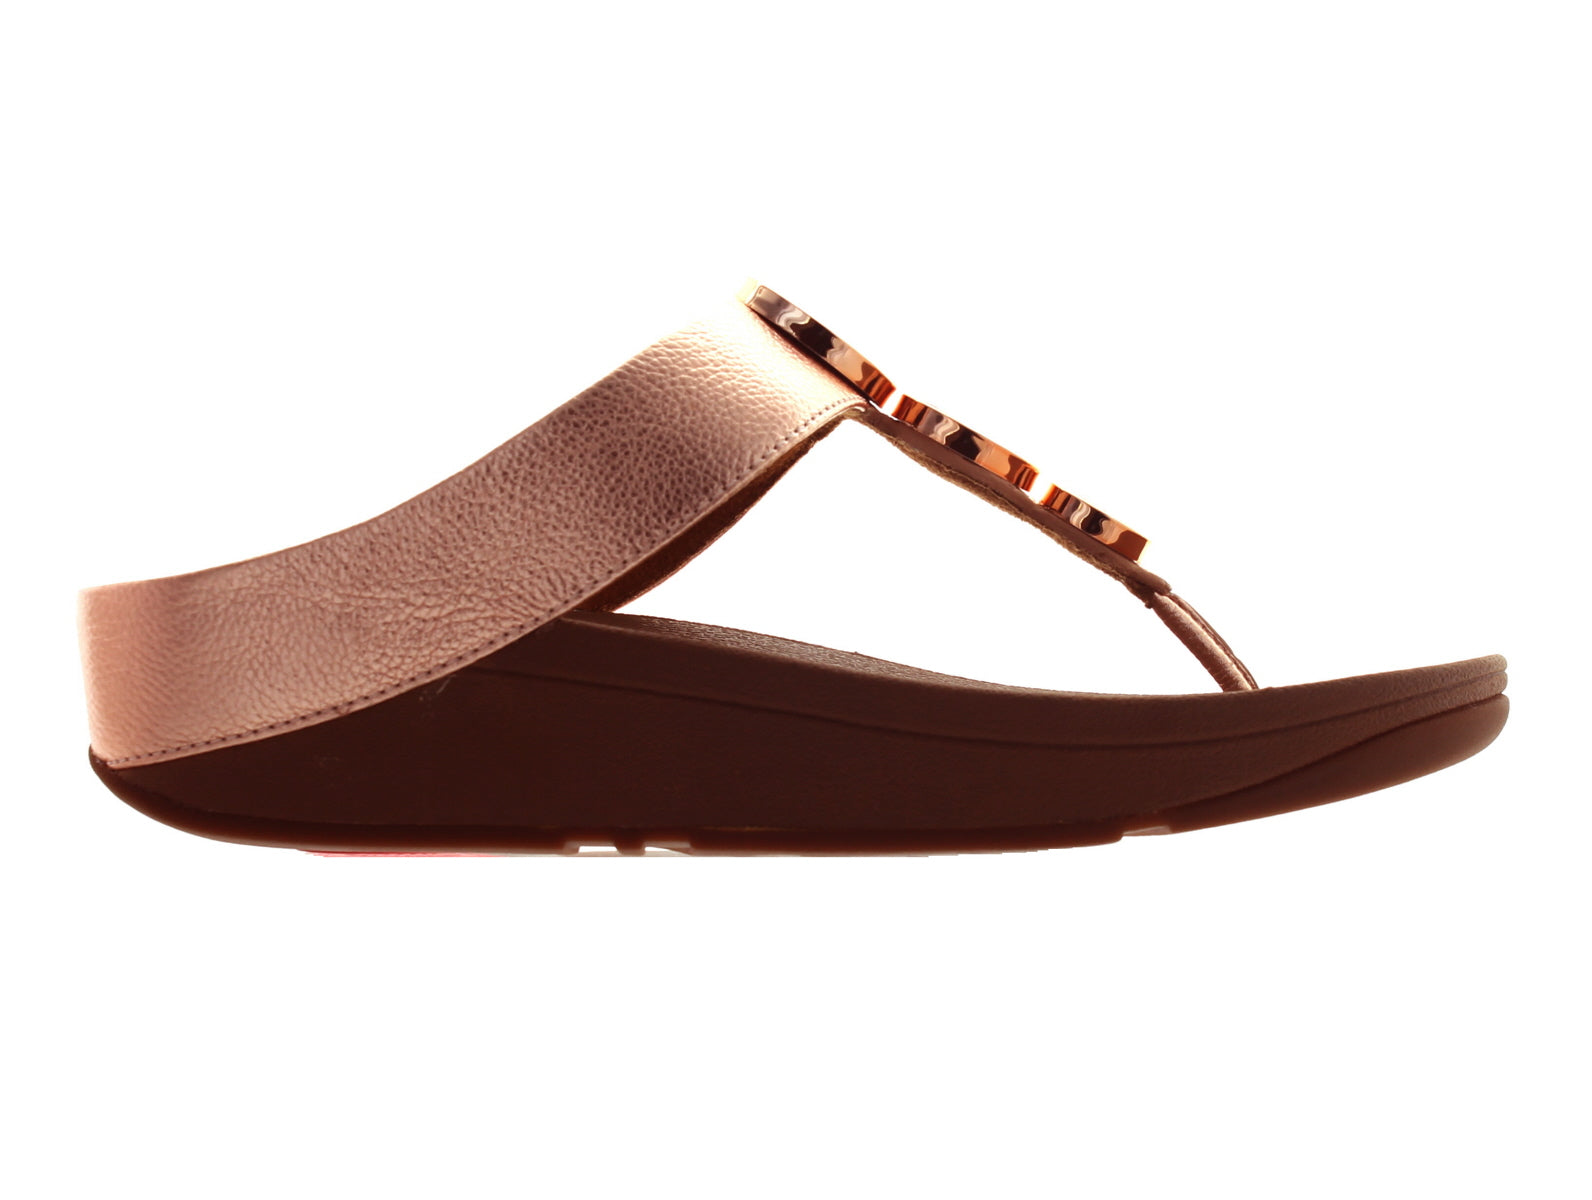 ad055d040a1d Fitflop Halo